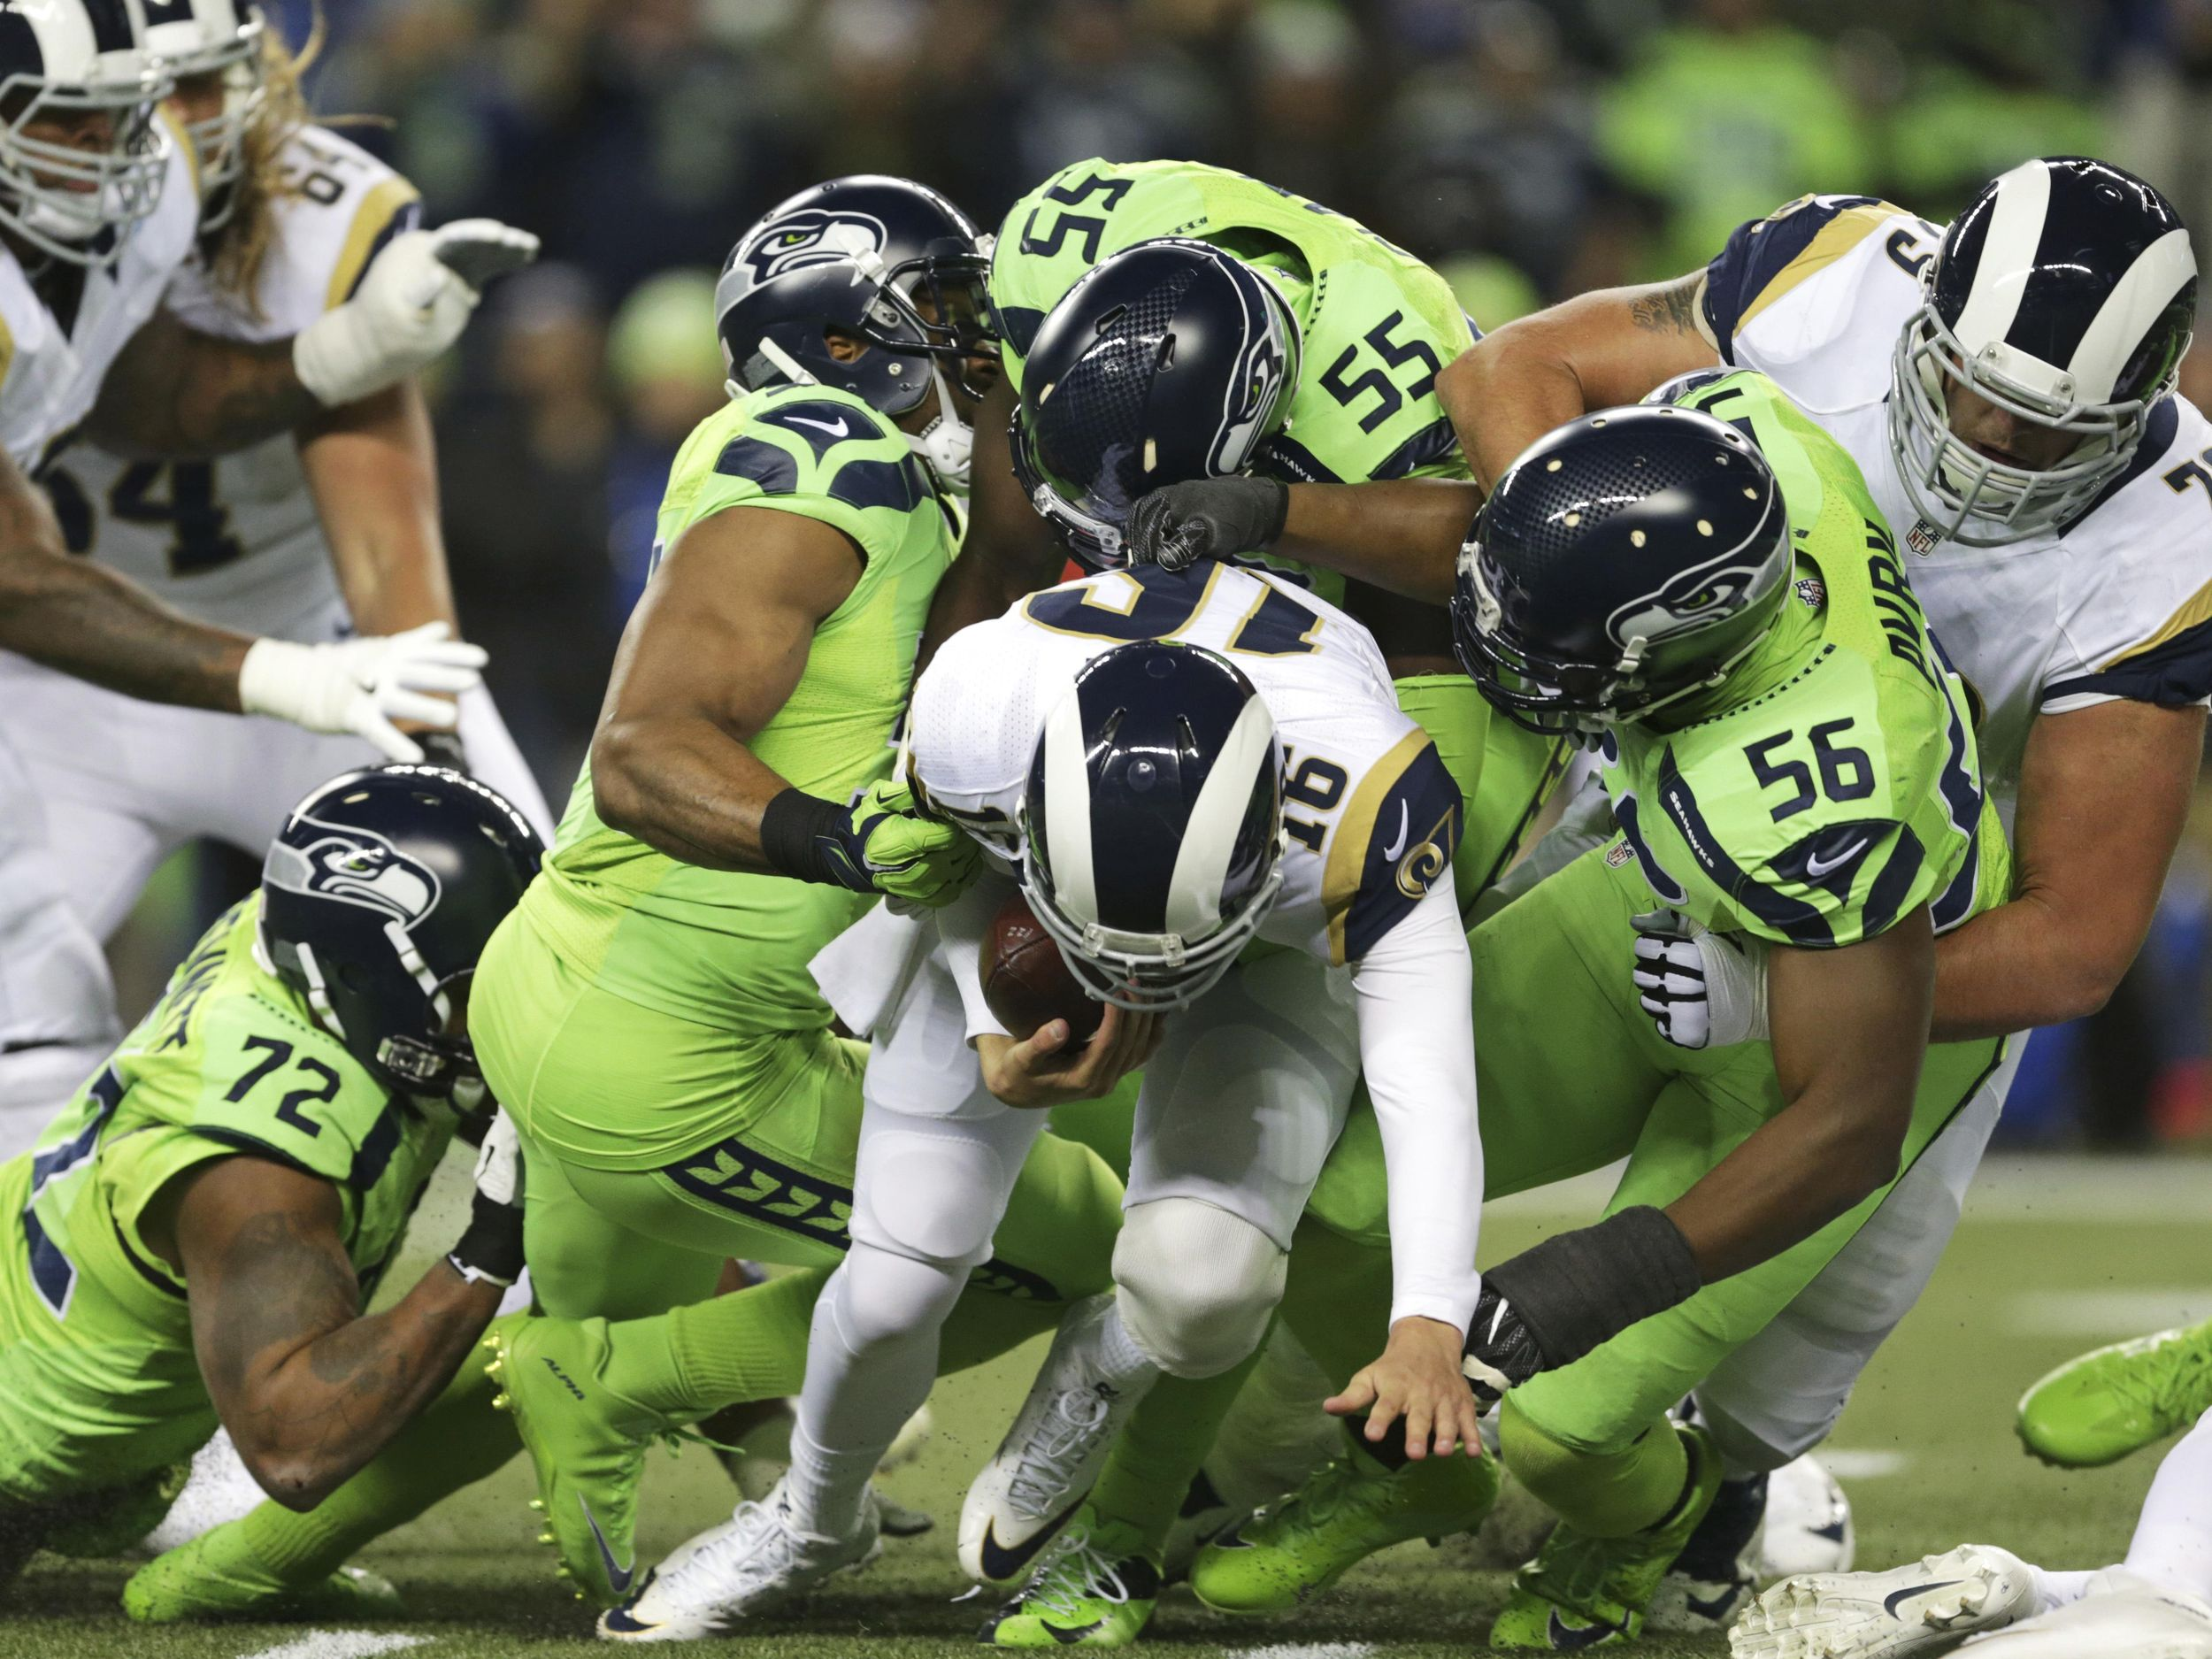 Seahawks Take Nfc West Title With 24 3 Win Over Rams The Spokesman Review